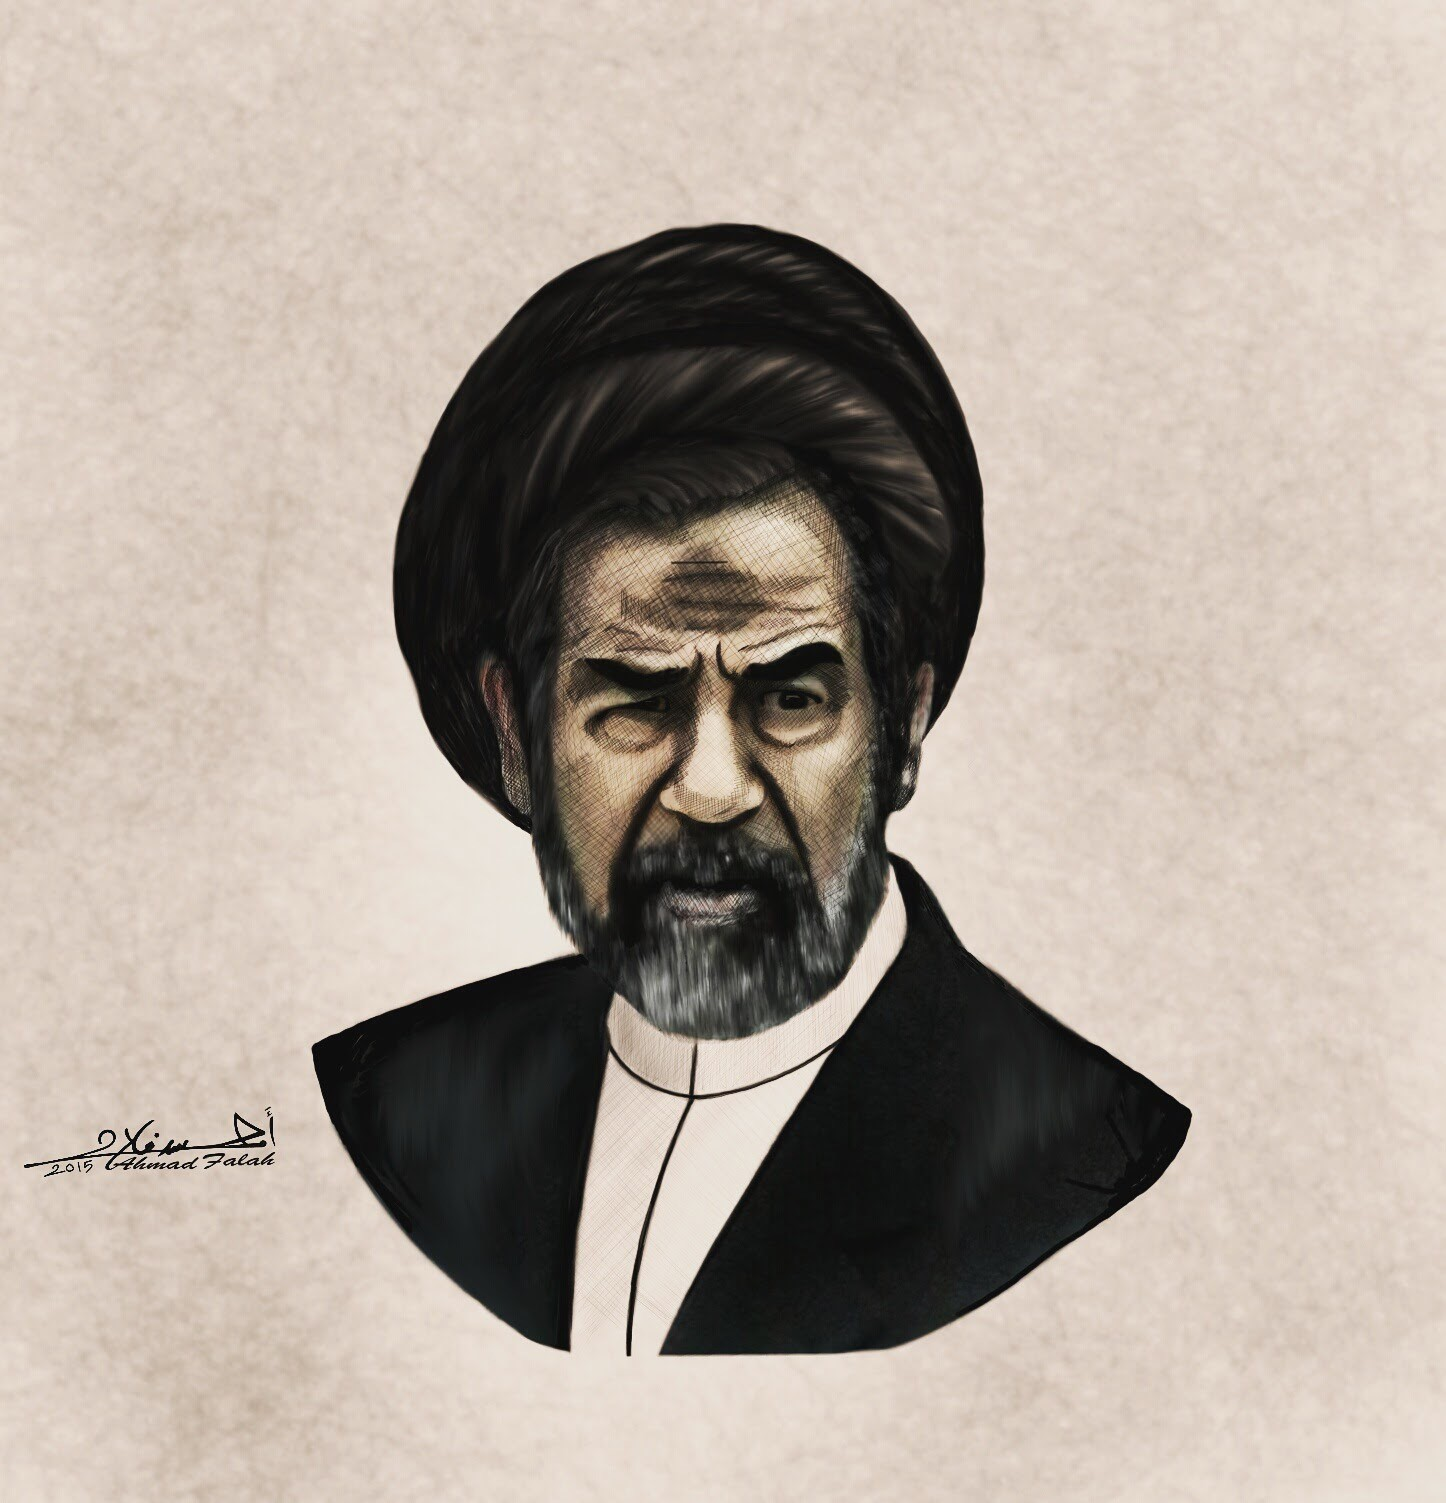 Iraqi artist, political cartoonist's Ahmad Falah's depiction of Saddam wearing the turban of a cleric, with a prayer bump on the forehead, mockingly showing his dedication to prayer. Photo.